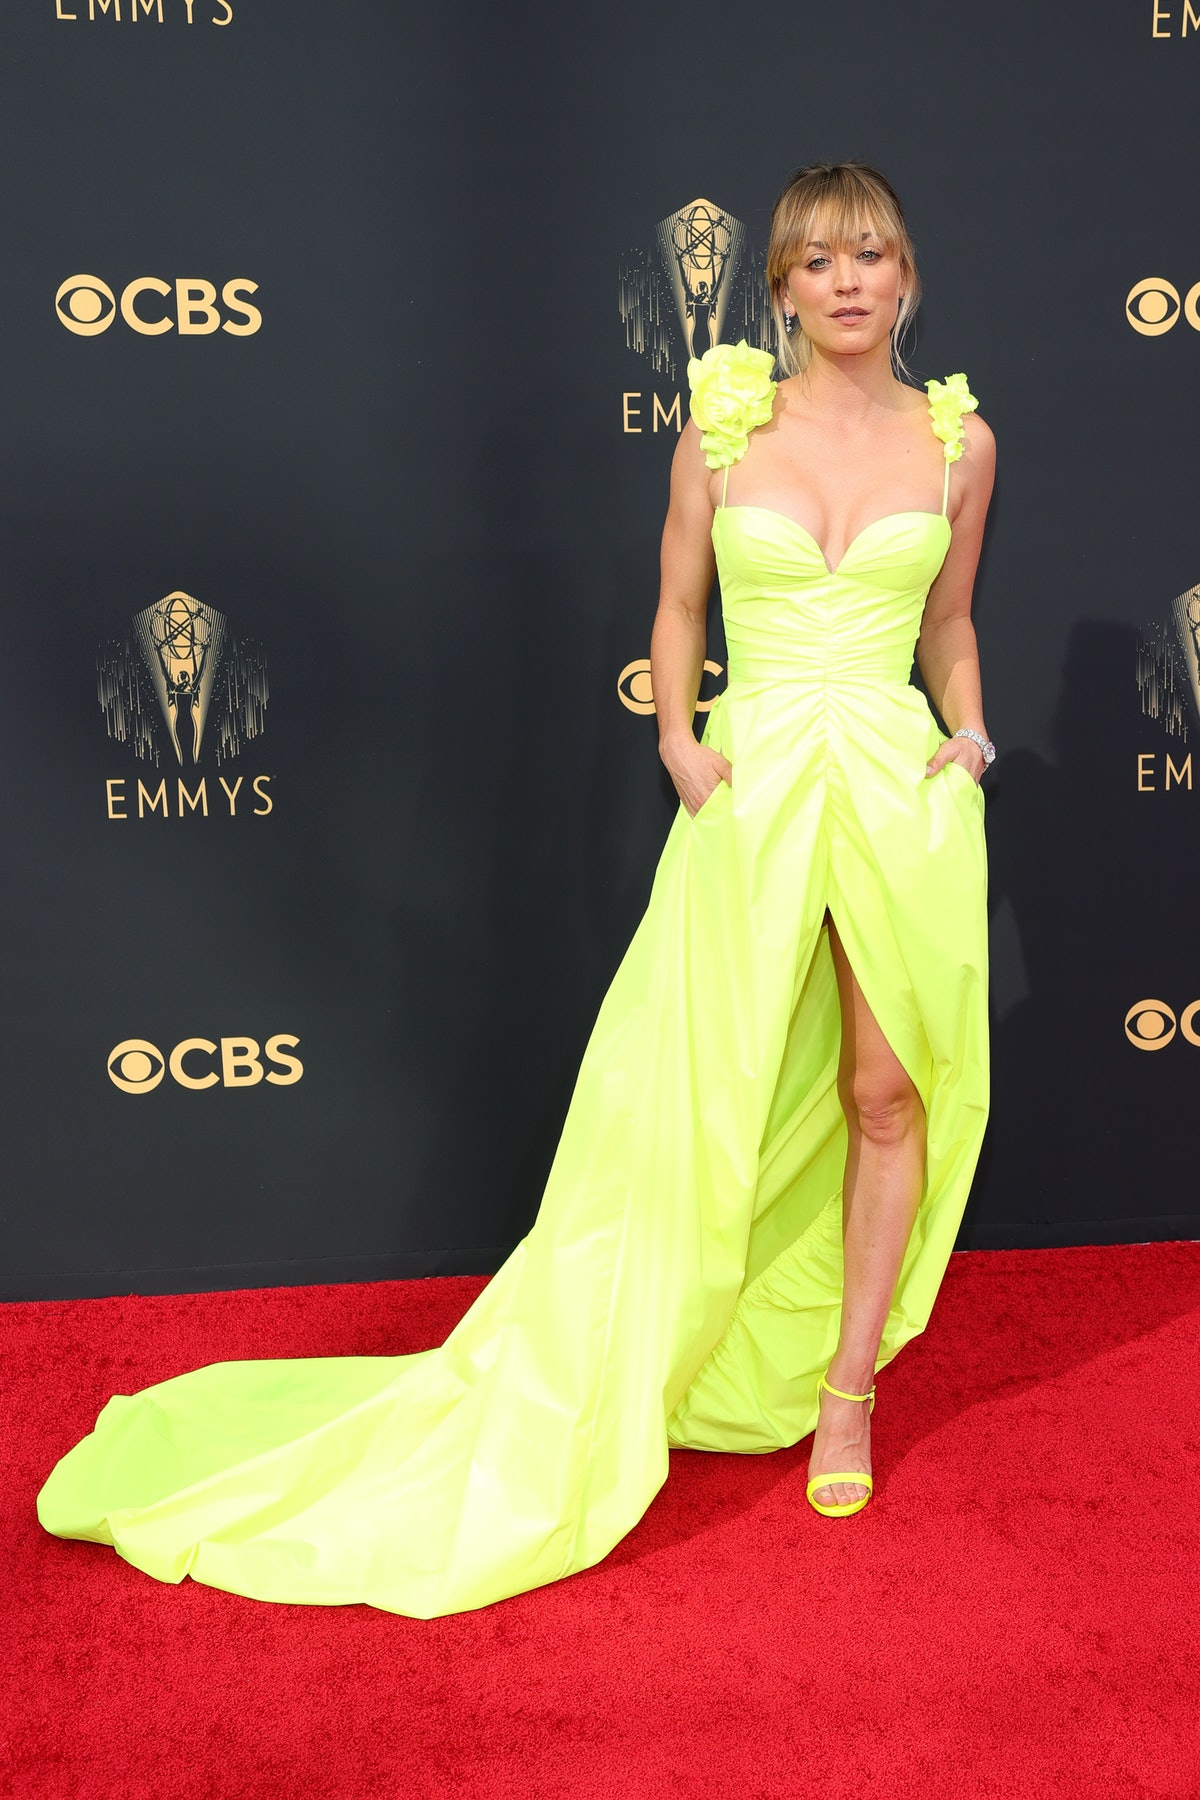 Kaley Cuoco attends the 73rd Primetime Emmy Awards